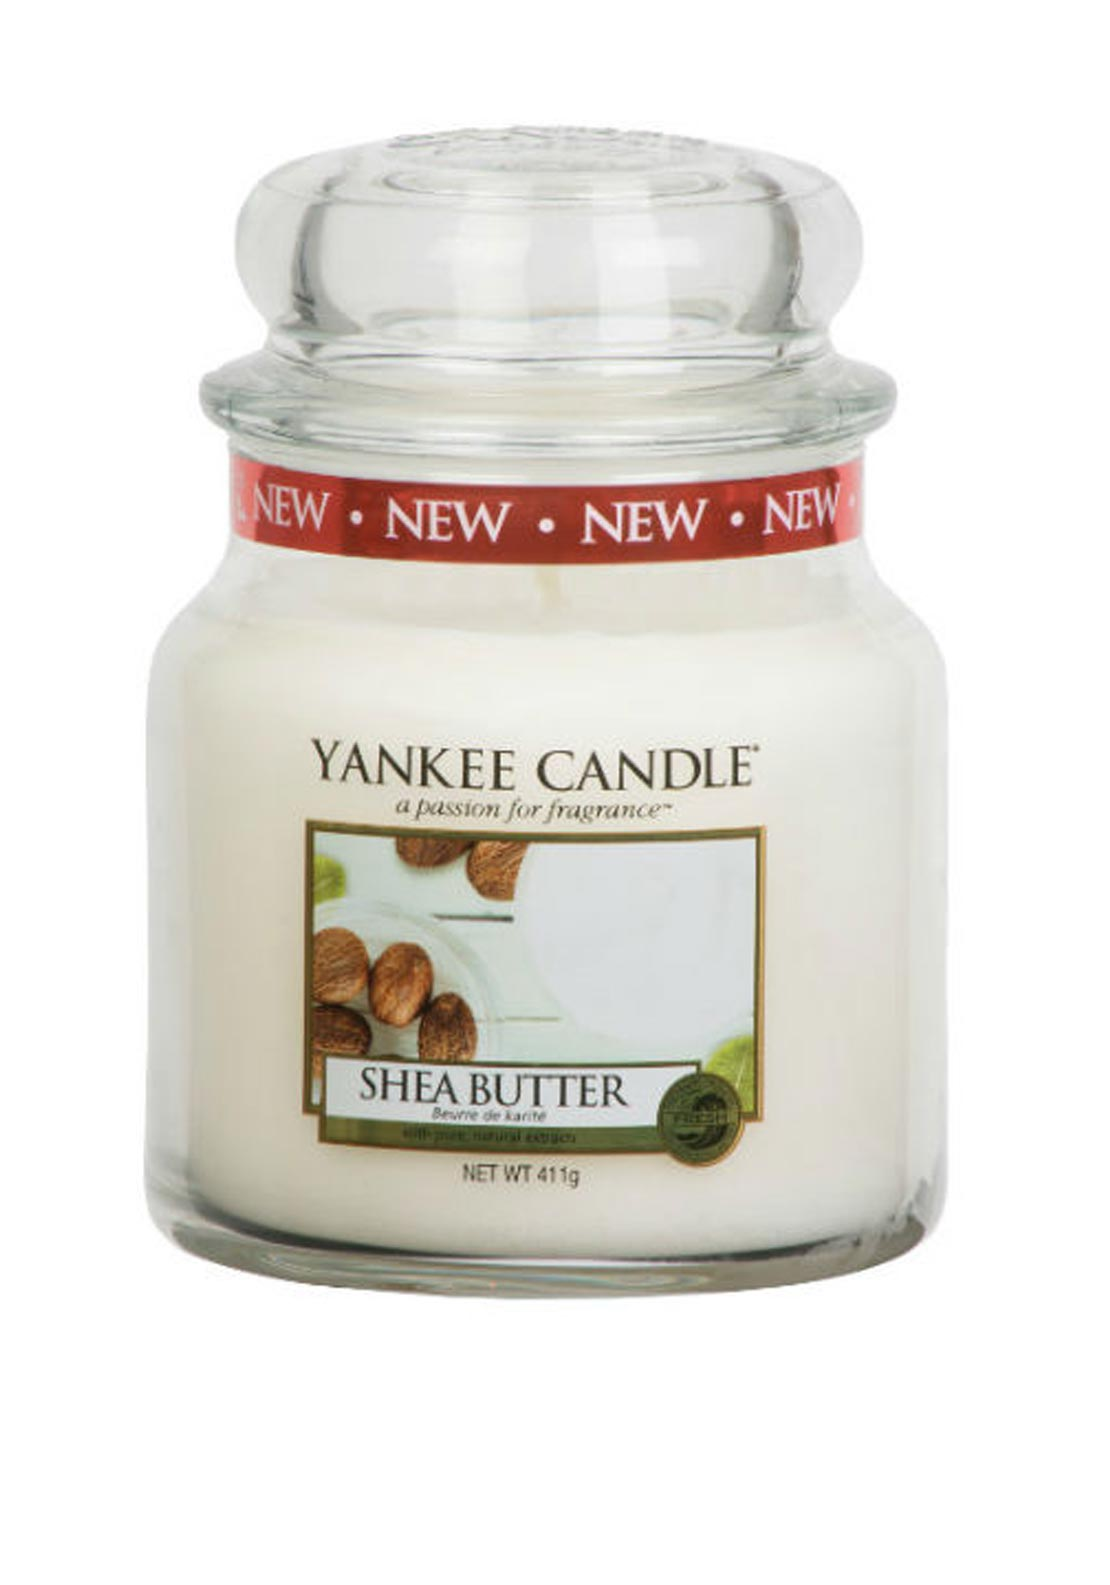 Yankee Candle Medium Classic Jar, Shea Butter